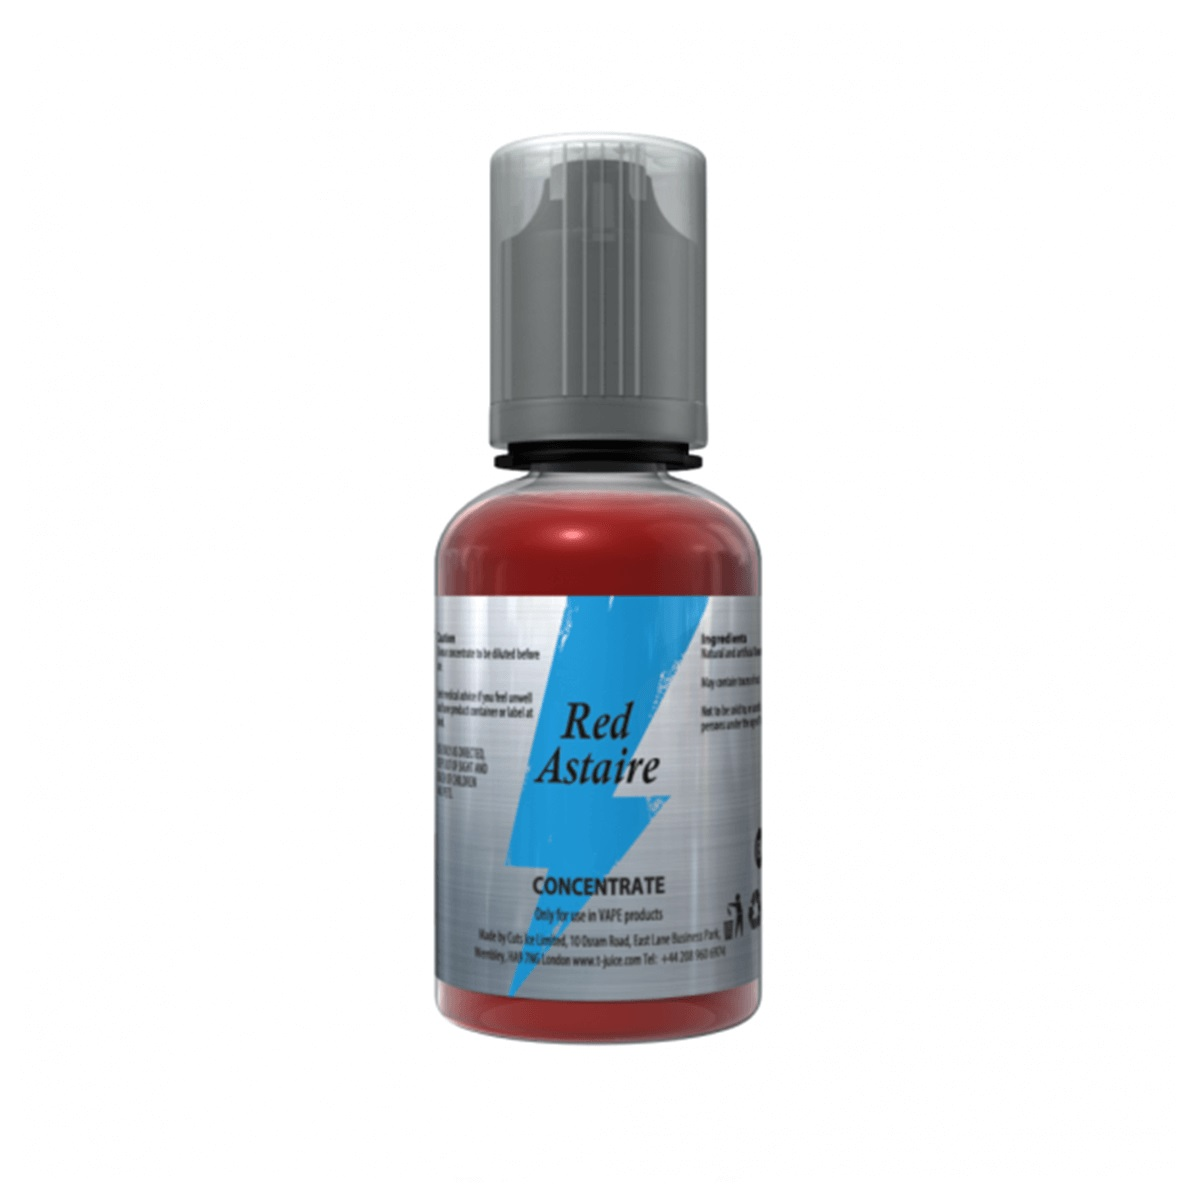 Red Astaire Concentrate by T-Juice 30ml